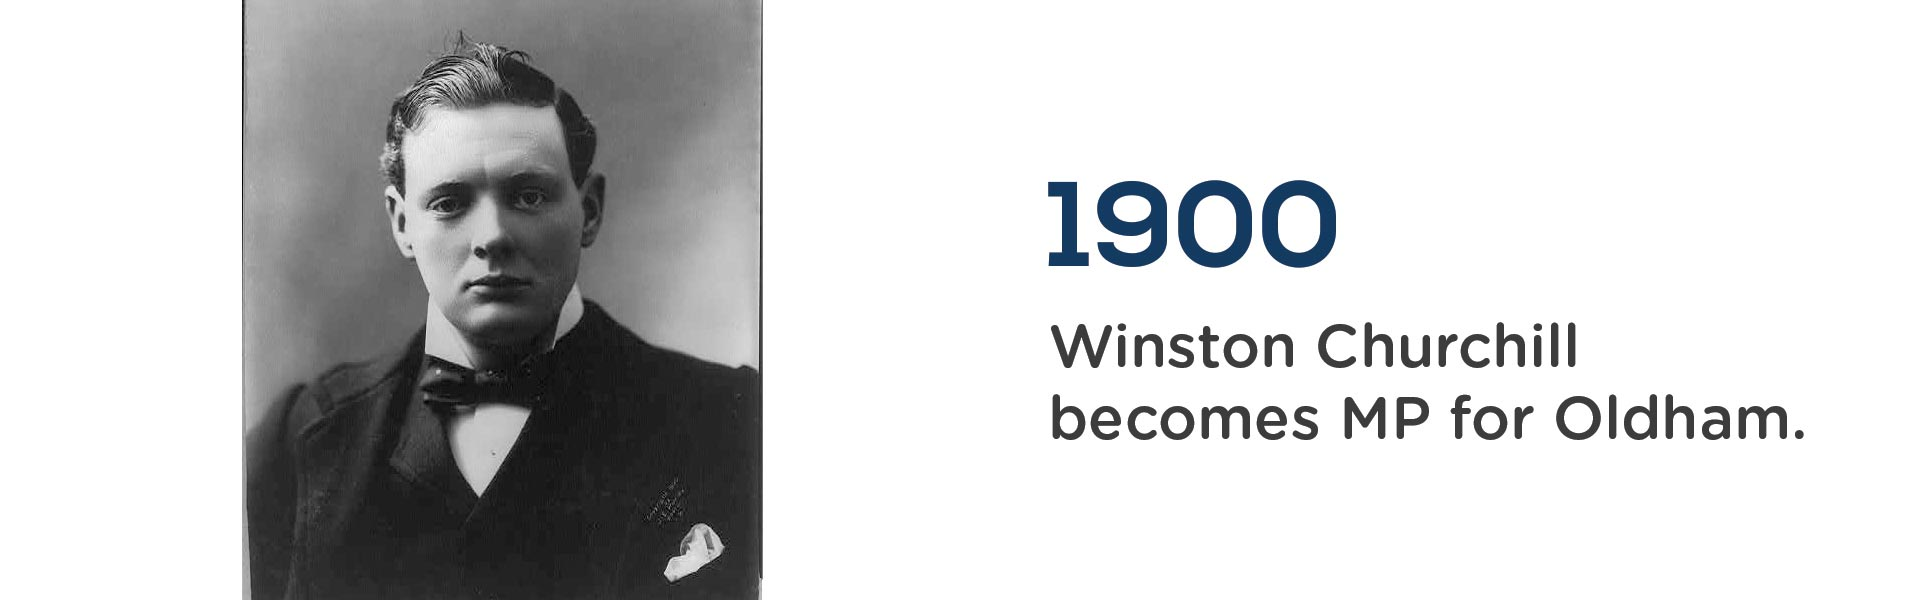 in 1900 Winsto Churchill became MP for Oldham. Wrigley Claydon Solicitors, Trusted for 200 years